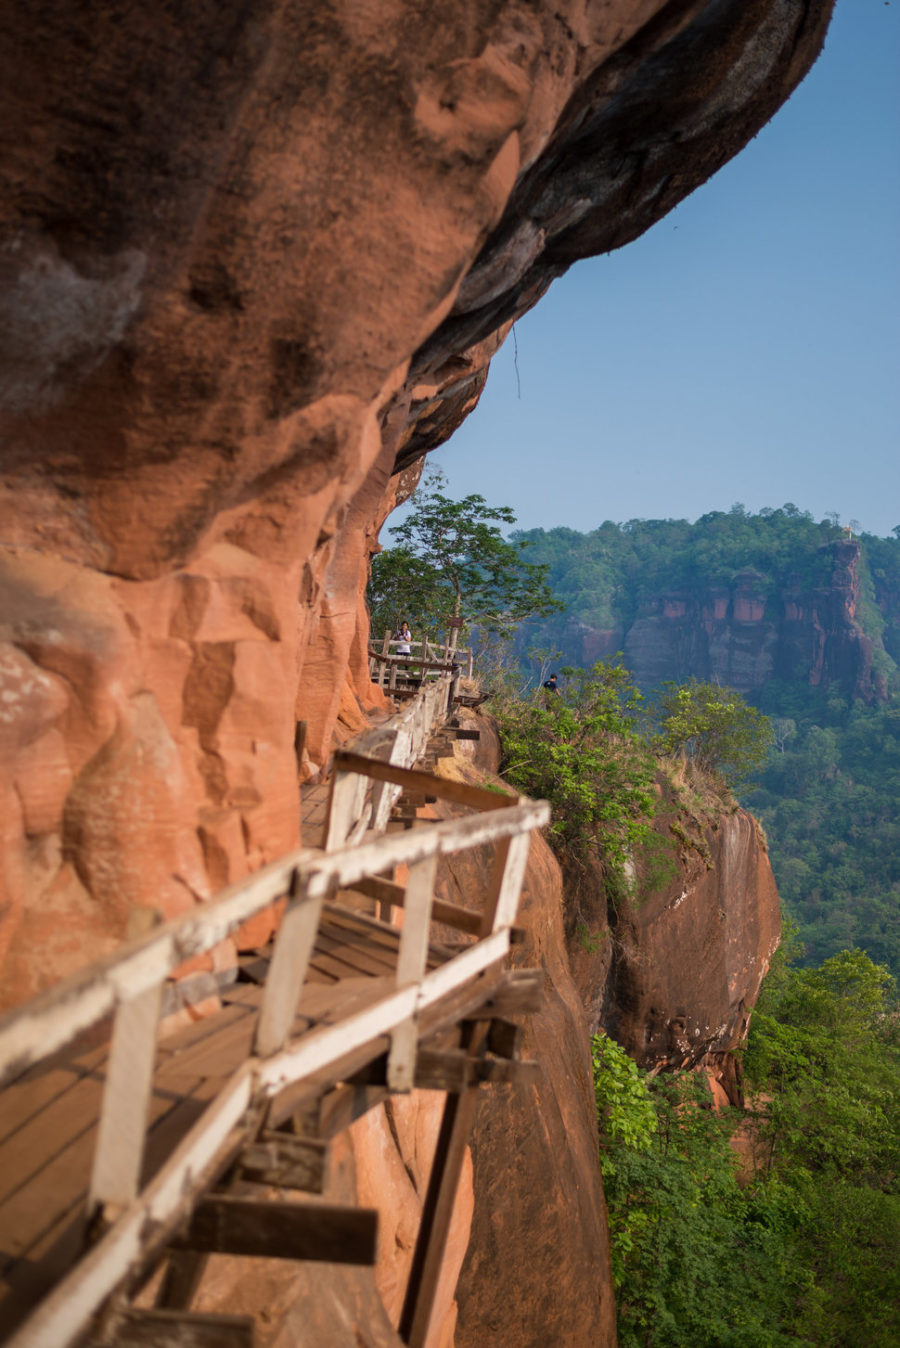 Wooden bridge in red cliffside at Wat Phu tok mountain Bueng Kan, ThailandWooden bridge in red cliffside at Wat Phu tok mountain Bueng Kan, ThailandWooden bridge in red cliffside at Wat Phu tok mountain Bueng Kan, Thailand